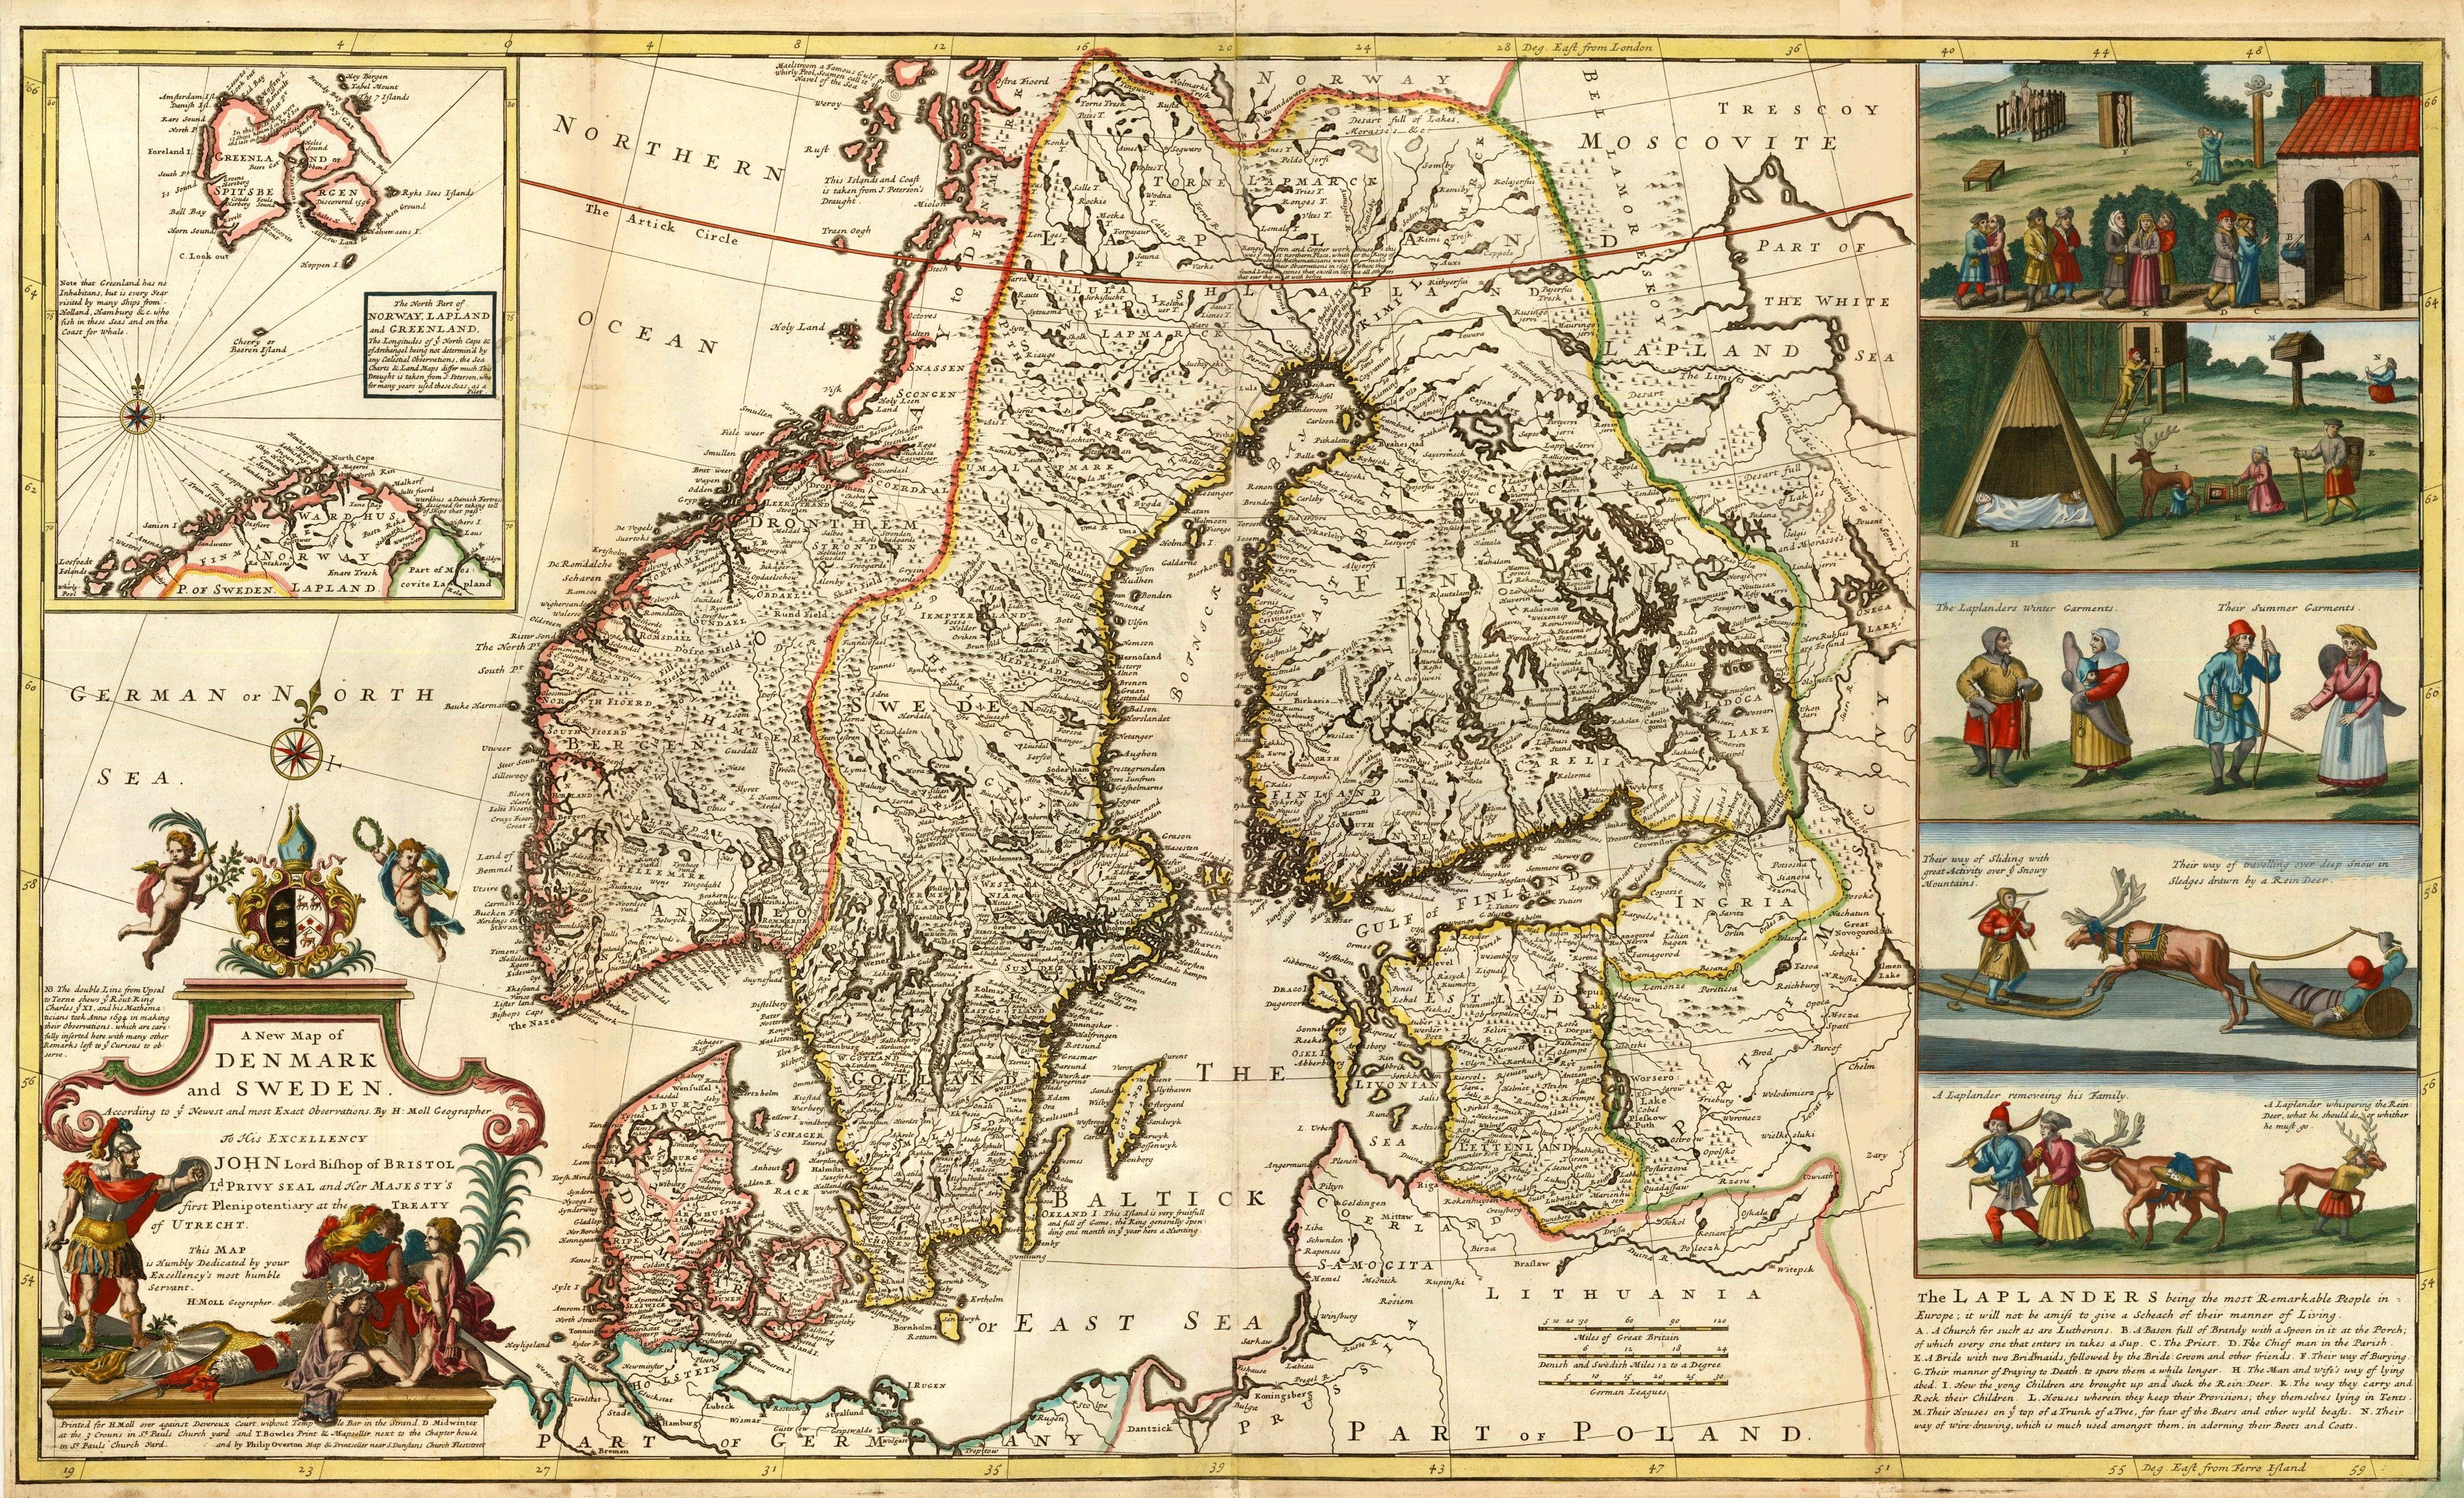 1726 map of denmark and sweden by moll antique maps and prints antique maps 1726 map of denmark and sweden by moll sciox Gallery